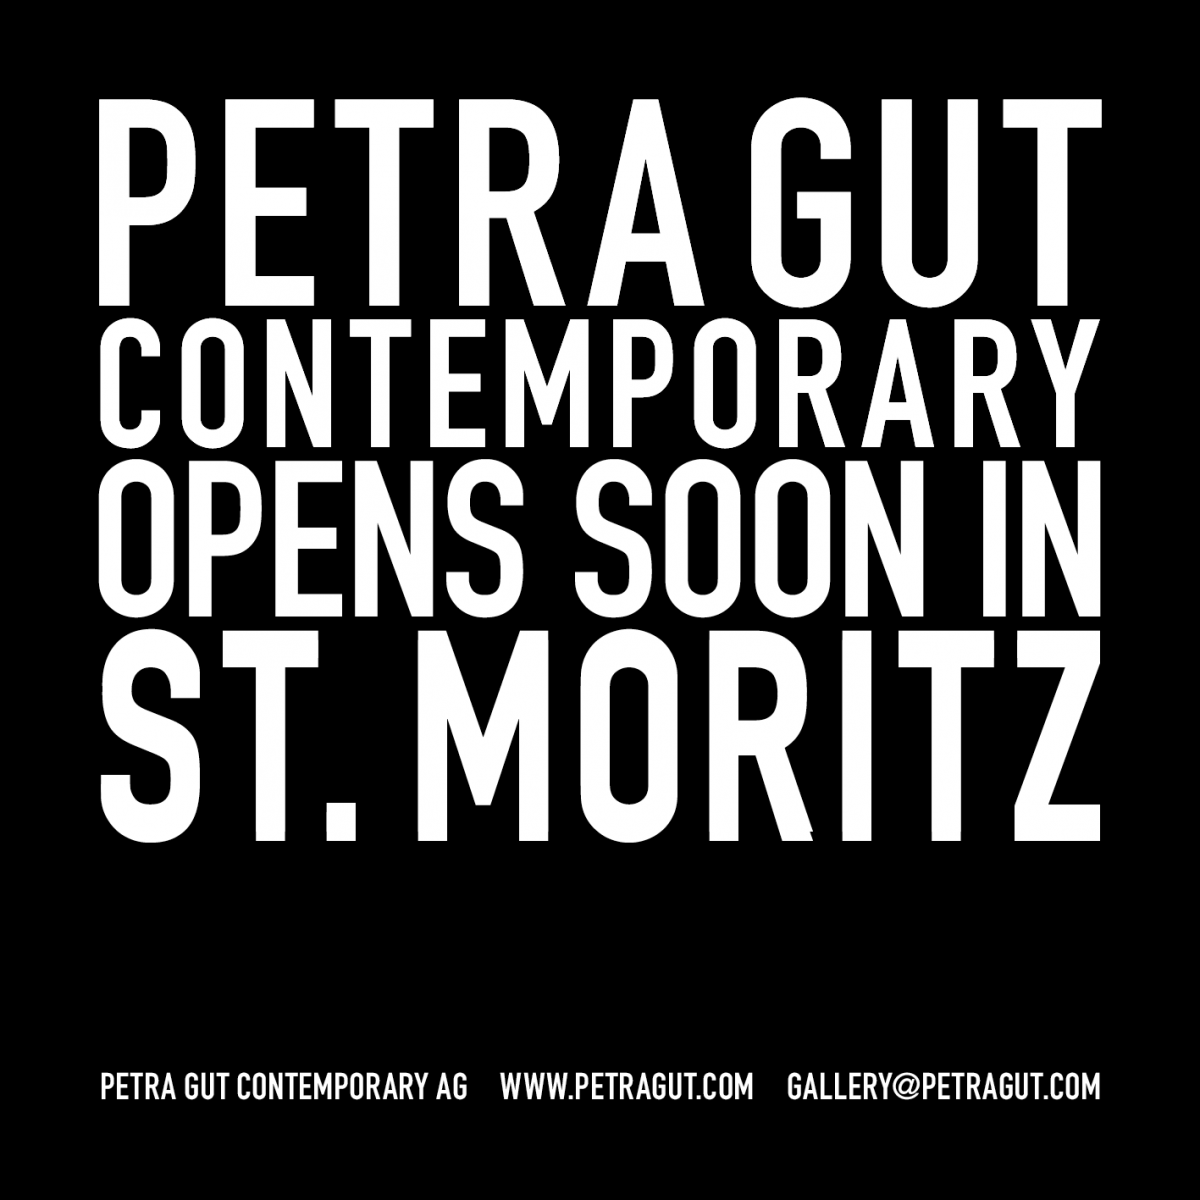 Petra Gut Contemporary opens soon in St. Moritz